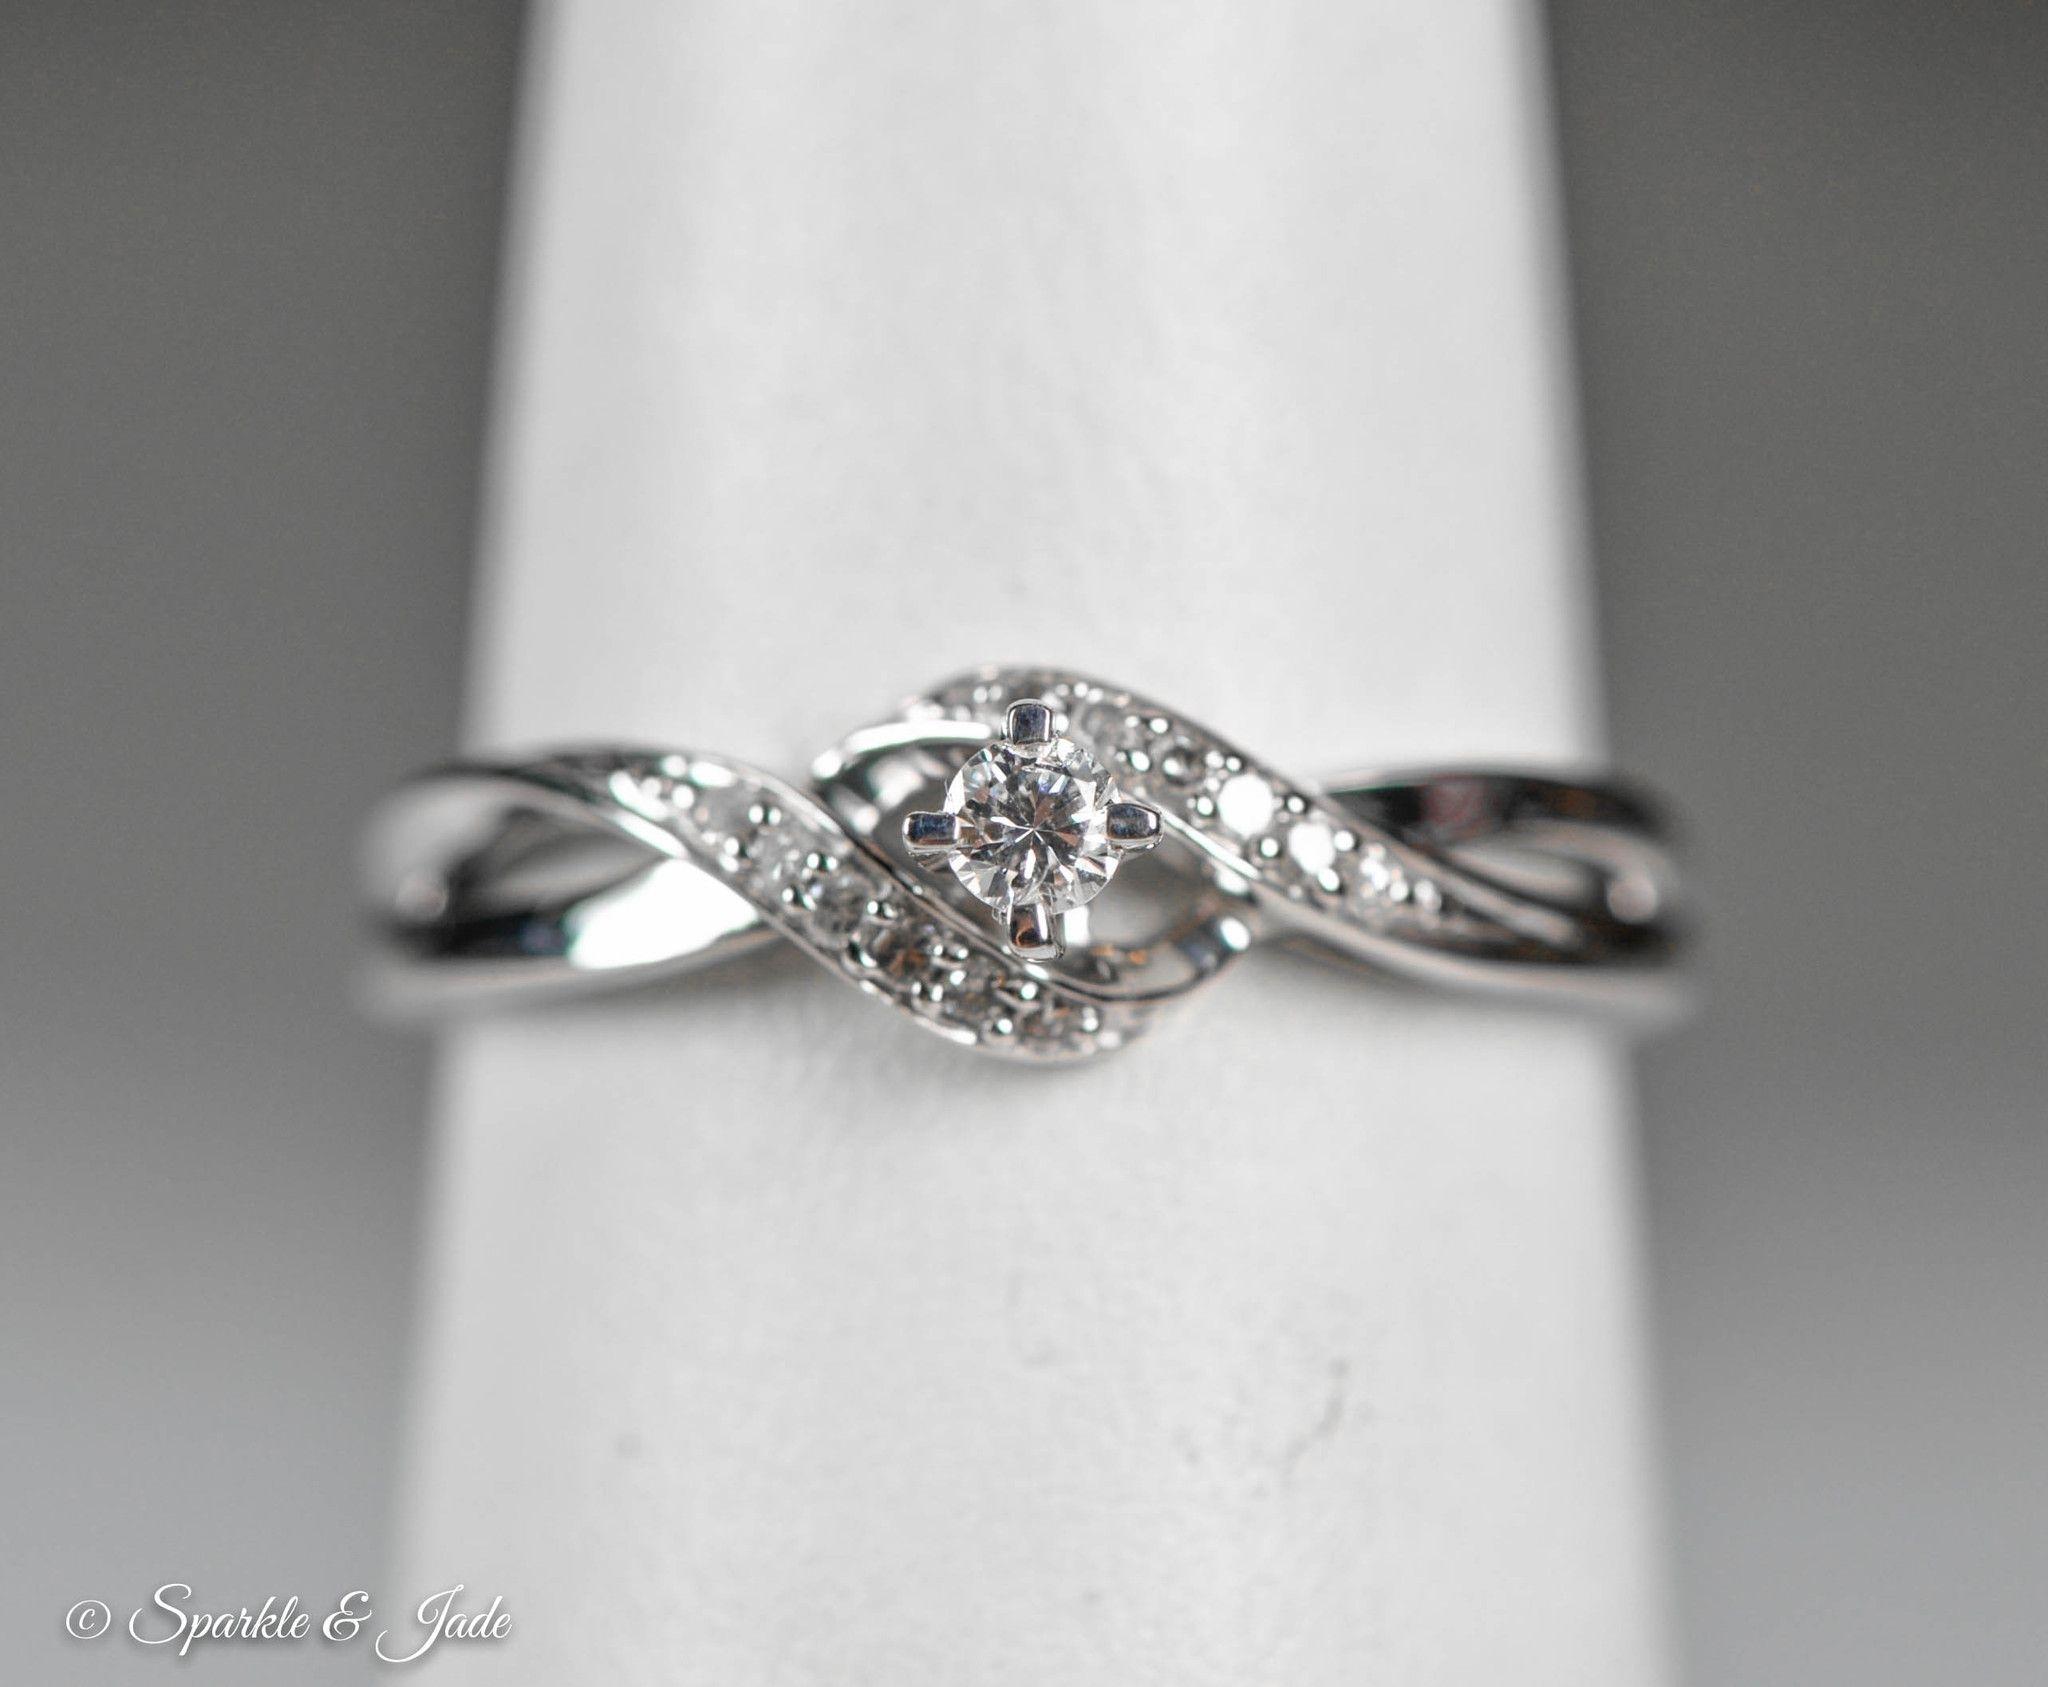 Sterling Silver Diamond Twist Promise Ring | Diamond Promise Rings Regarding Most Recently Released Diamond Twist Rings In Sterling Silver (View 13 of 15)